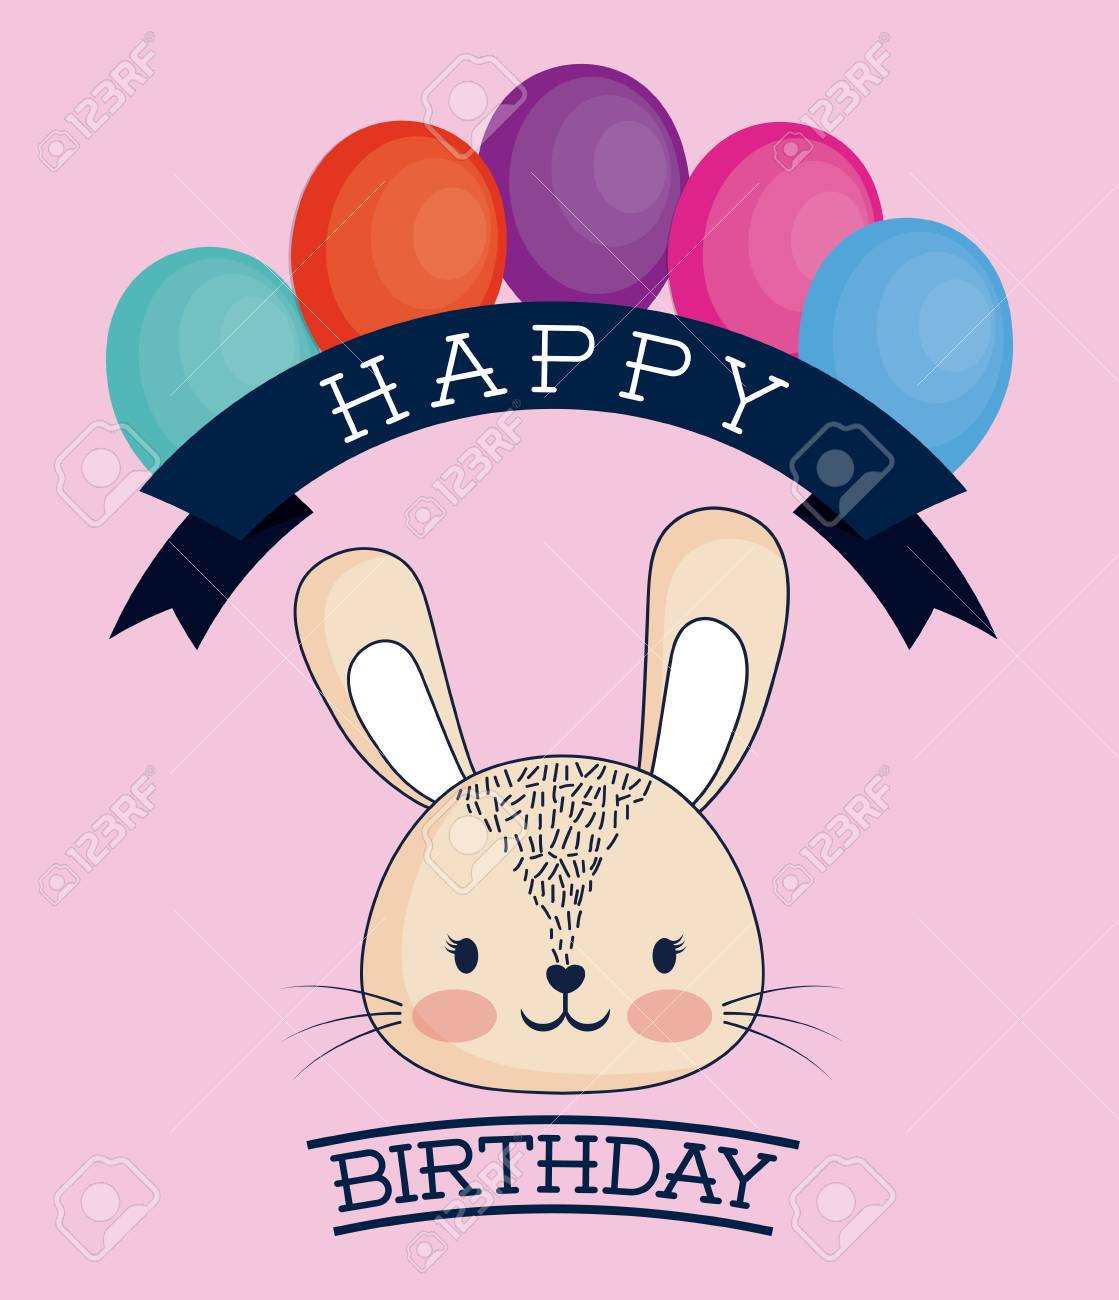 Happy Birthday Design With Cute Bunny Icon And Decorative Balloons